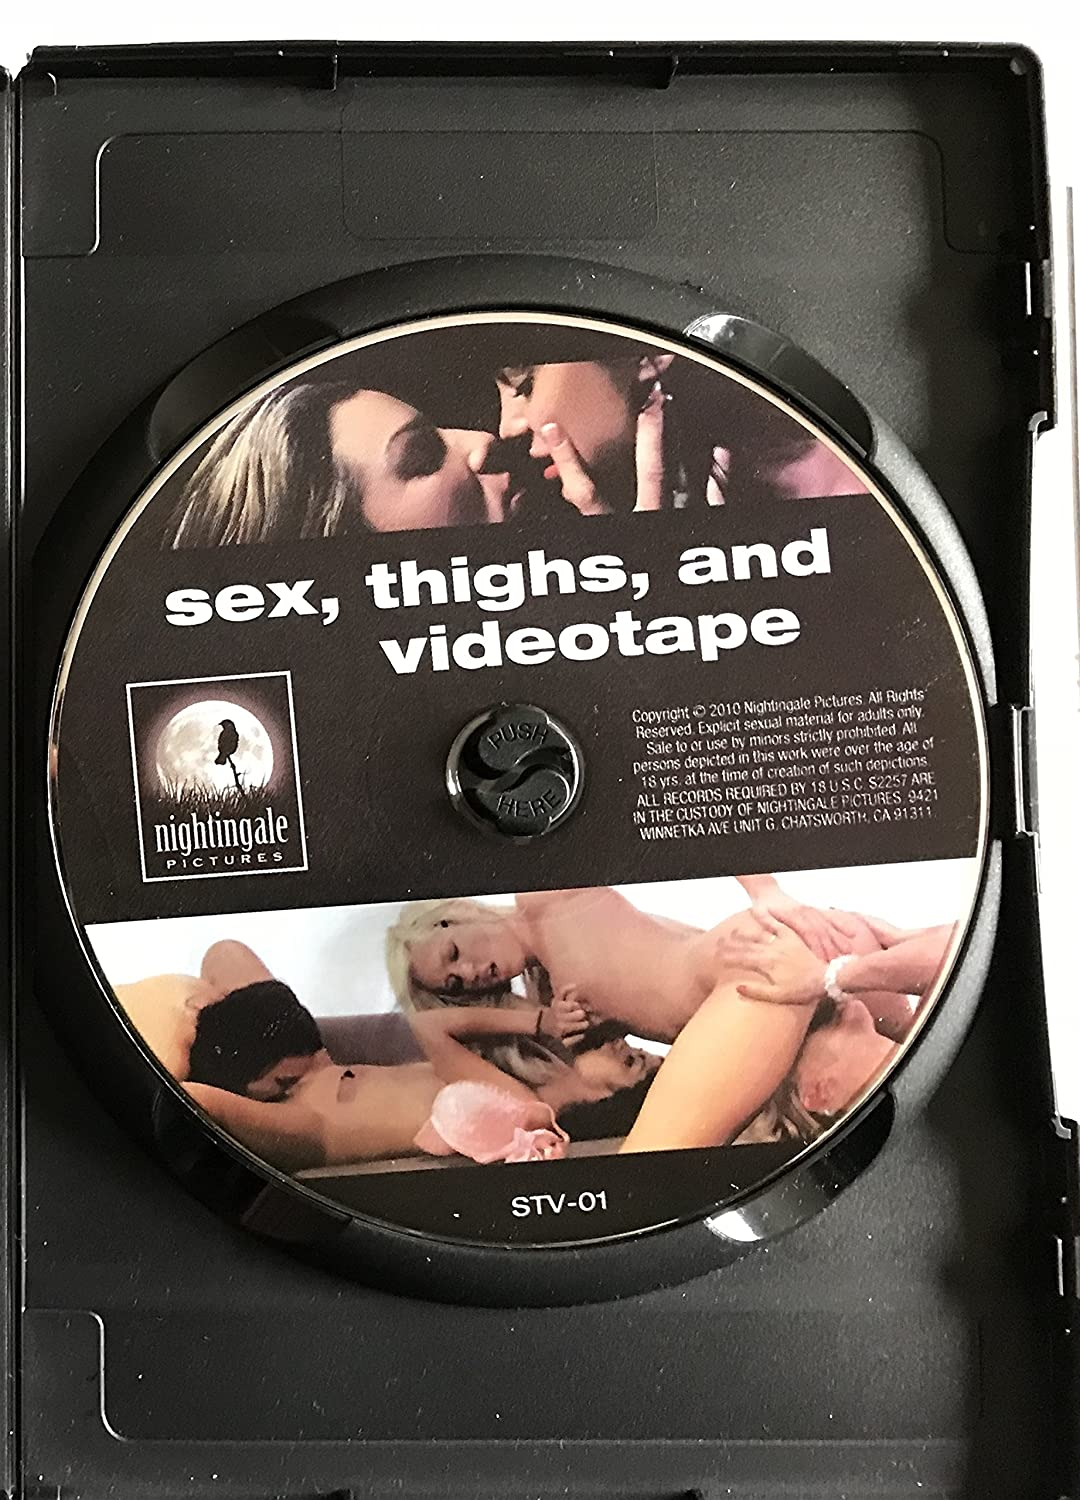 Xxx rated adult picture sex